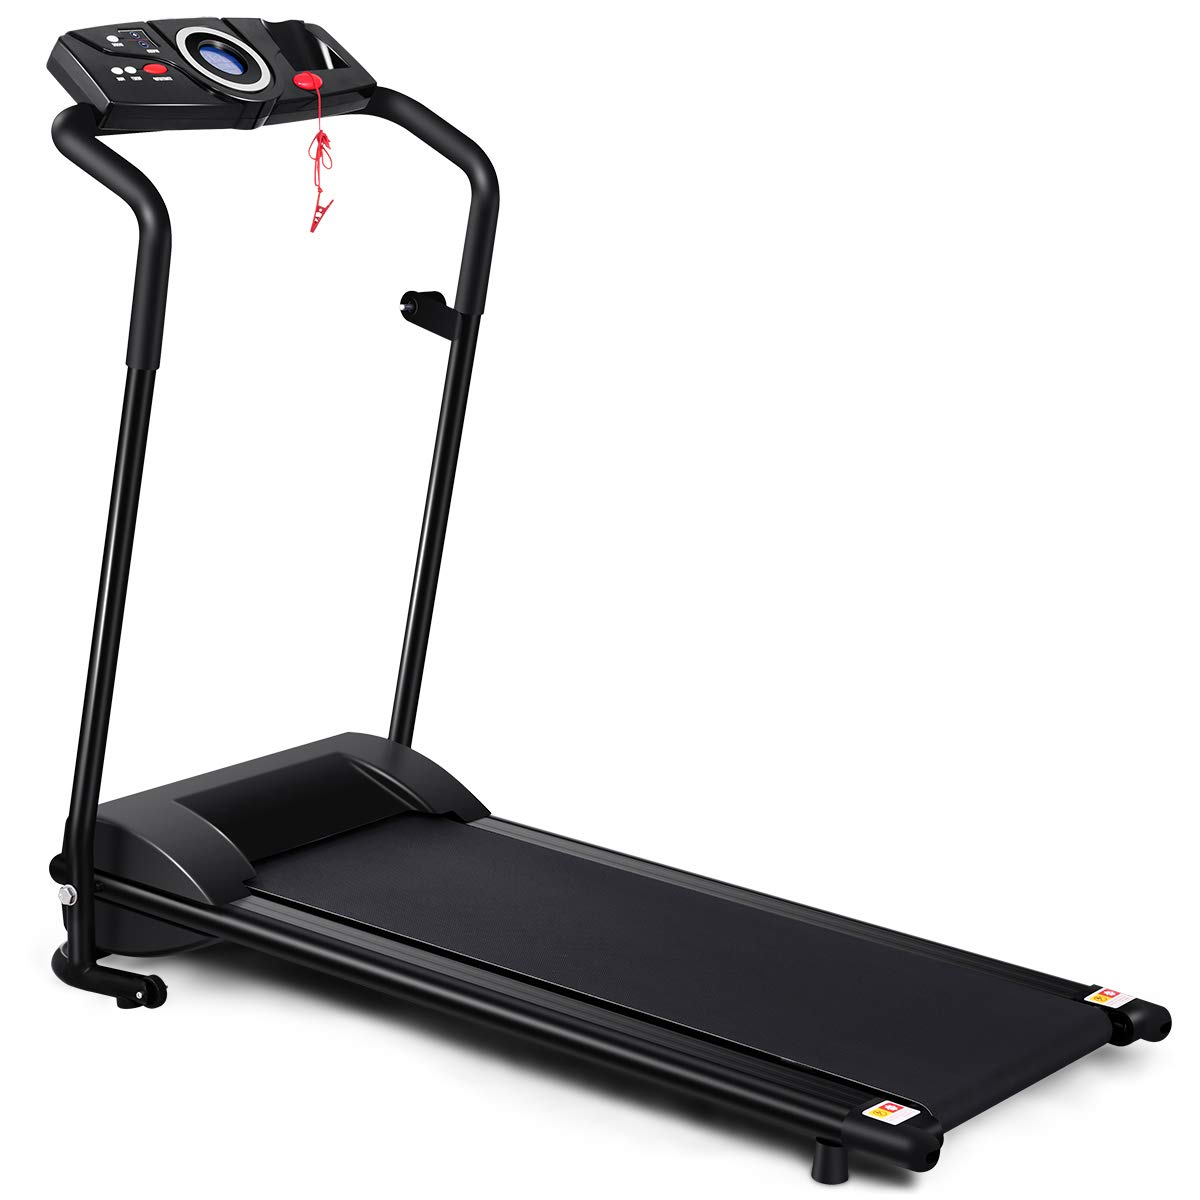 GYMAX Folding Electric Portable Treadmill Low Noise Jogging Walking Running Machine Exercise Treadmill w/Safety Key